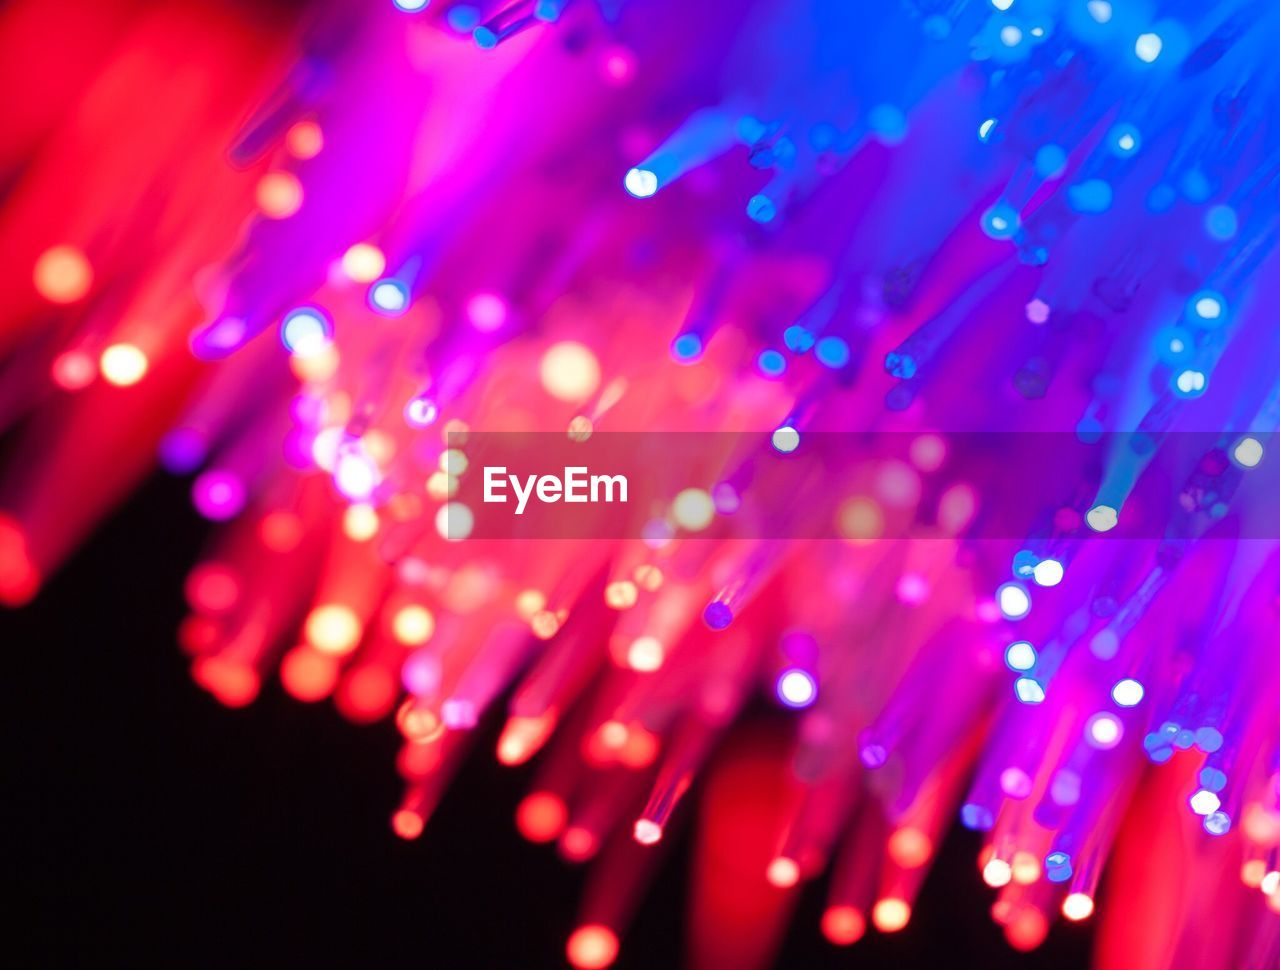 fiber optic, technology, illuminated, abstract, lighting equipment, glowing, vibrant color, multi colored, internet, close-up, no people, backgrounds, electrical equipment, red, computer network, defocused, black background, computer equipment, fiber, science, indoors, eyesight, night